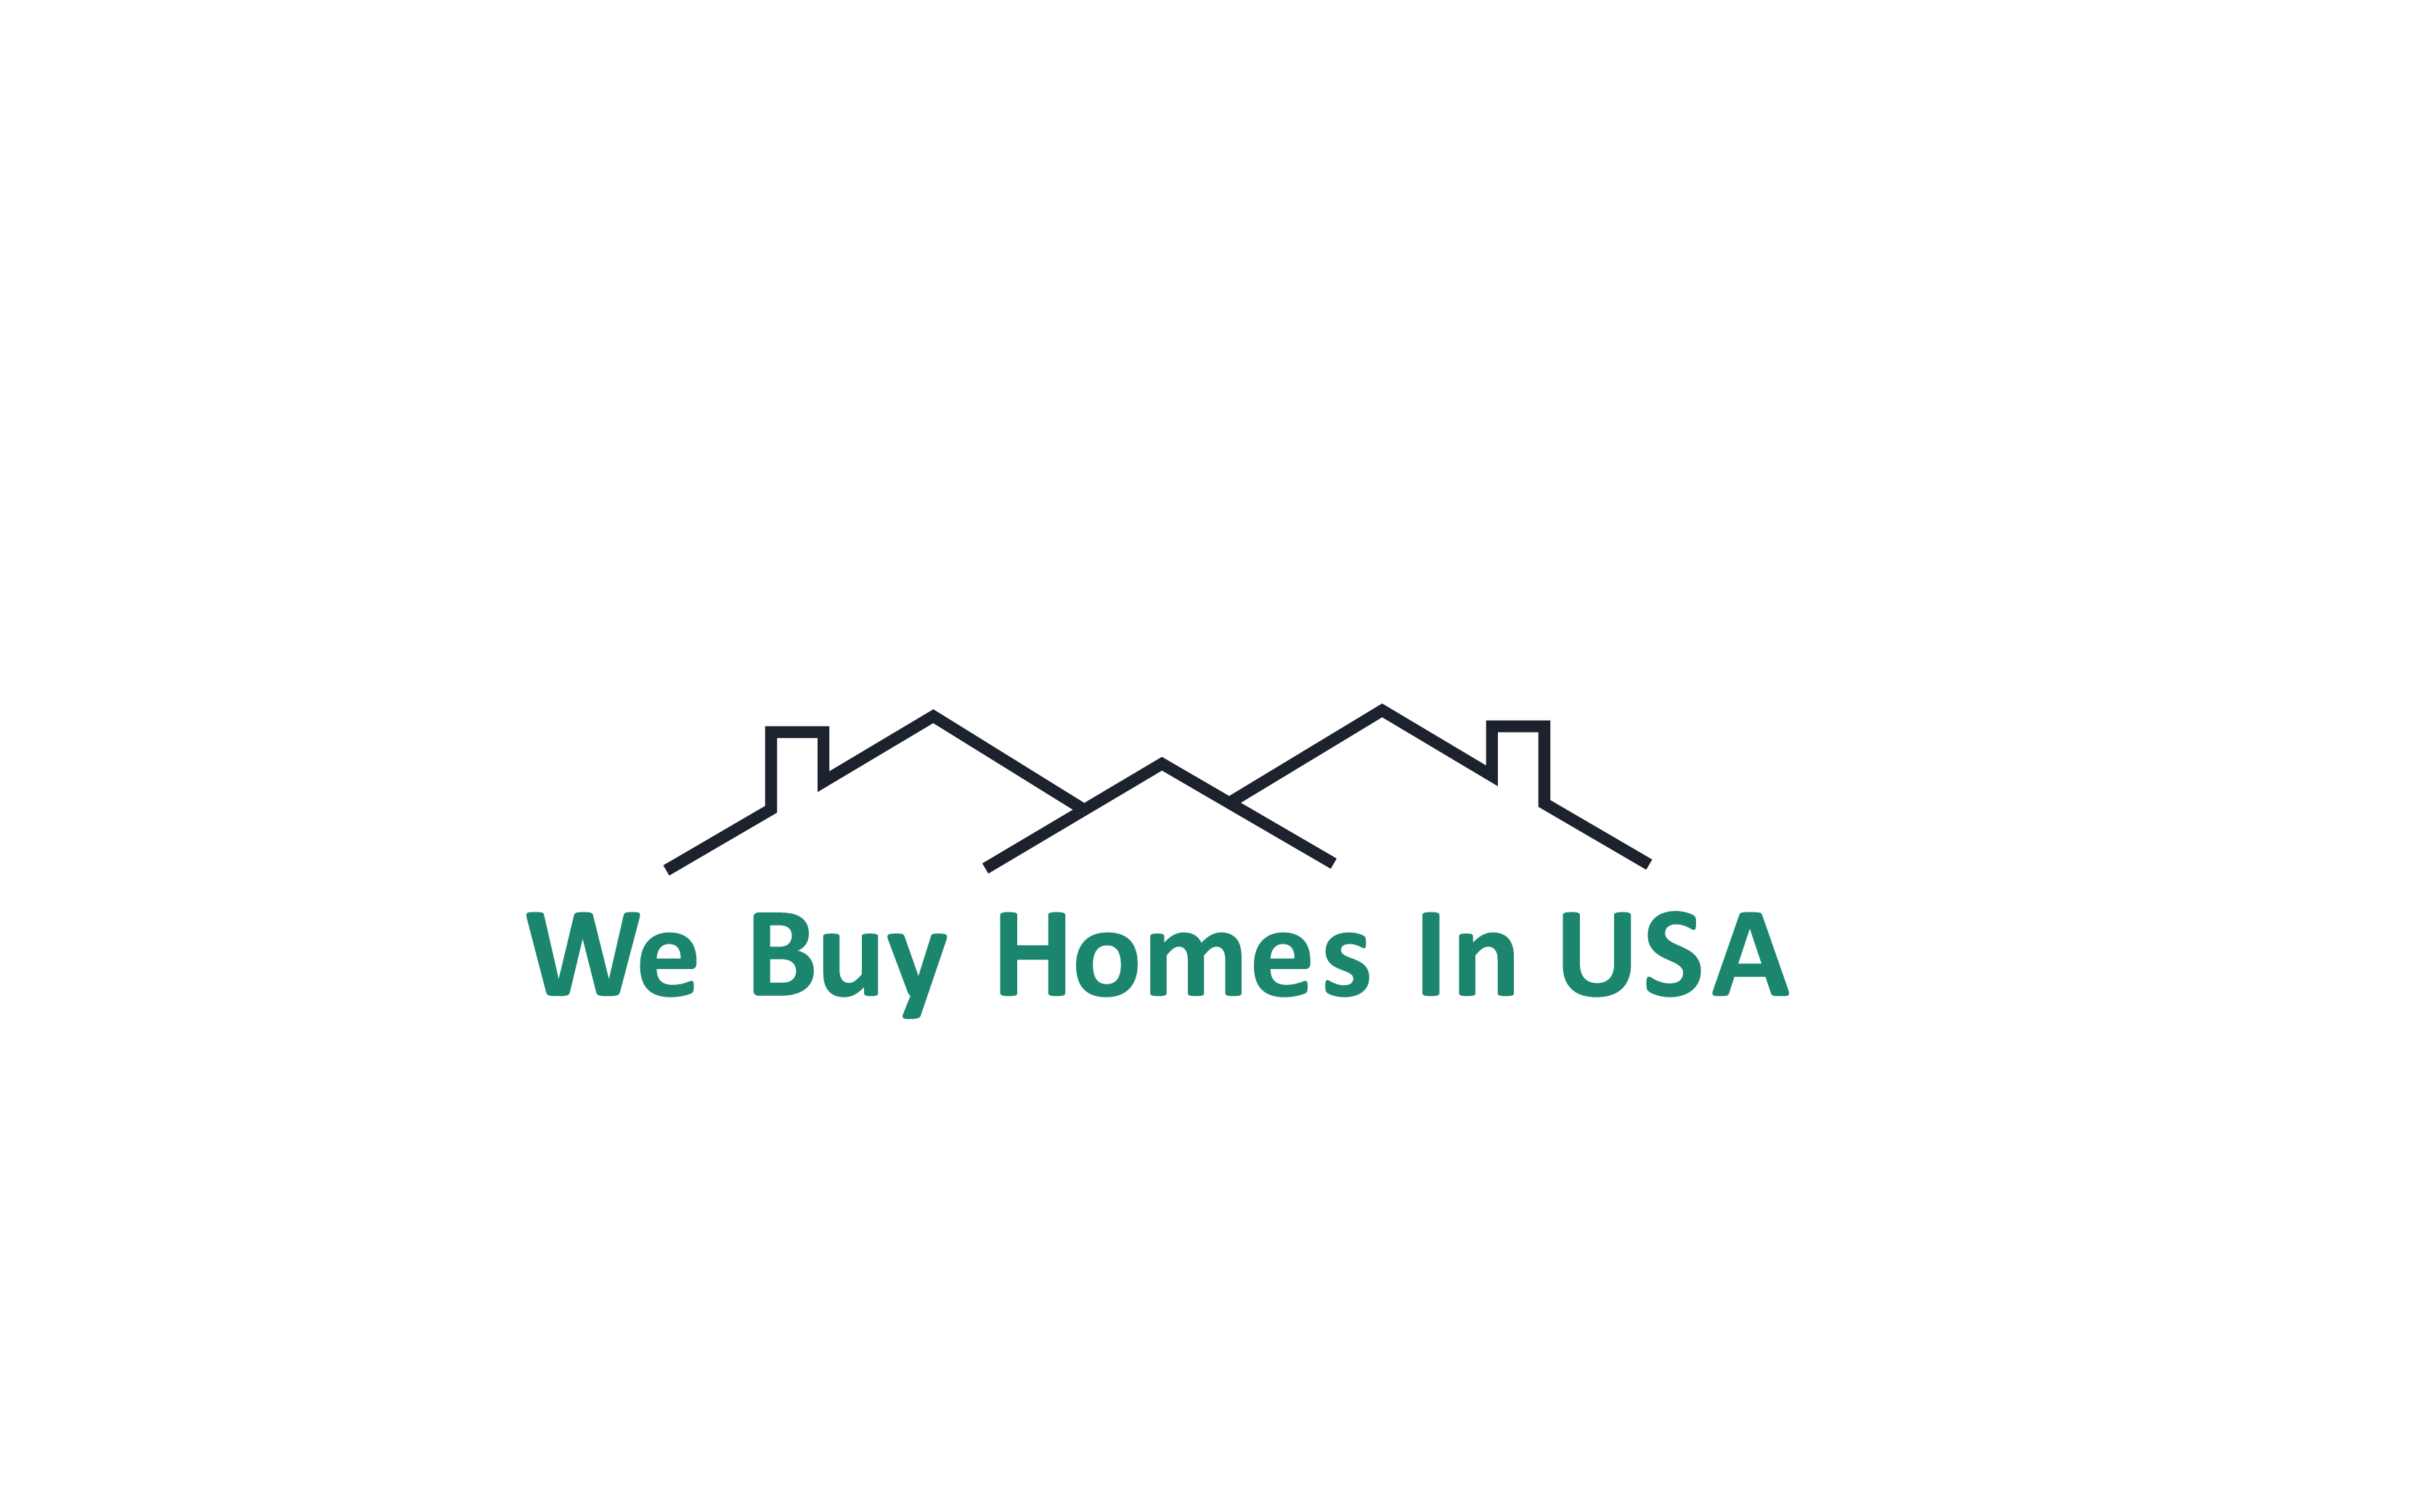 We Buy Homes In USA logo